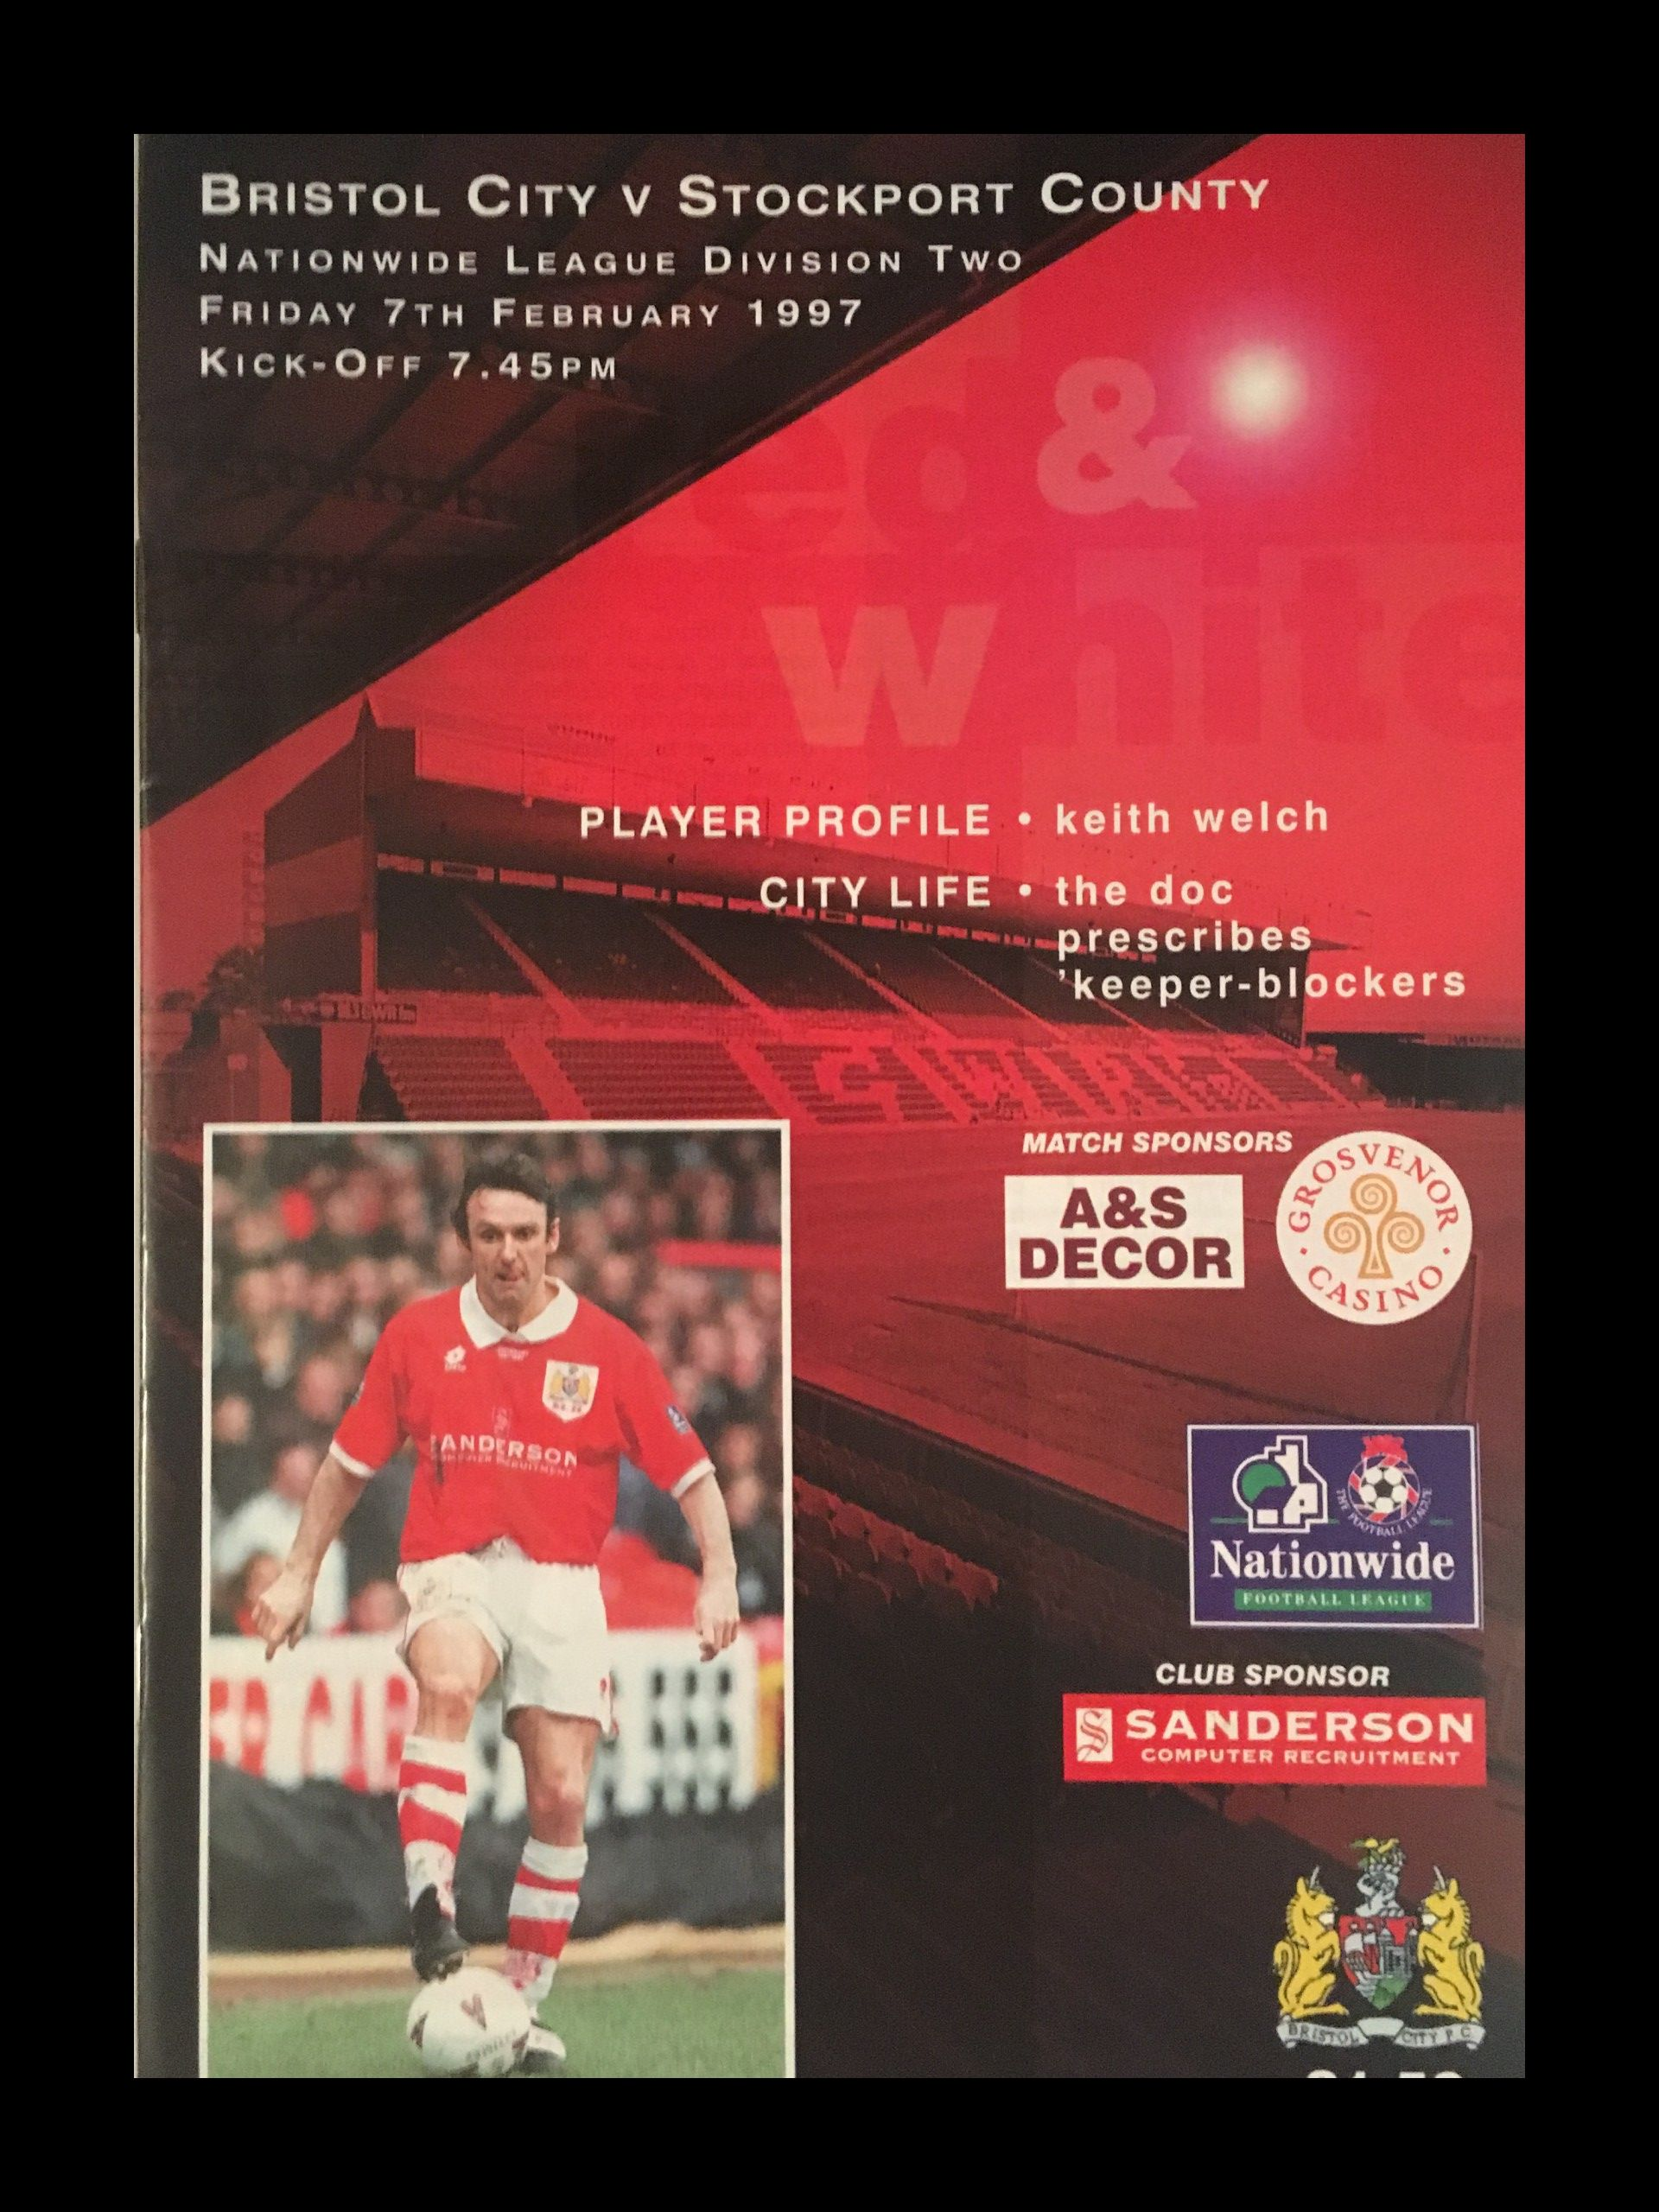 Bristol City v Stockport County 07-02-1997 Programme